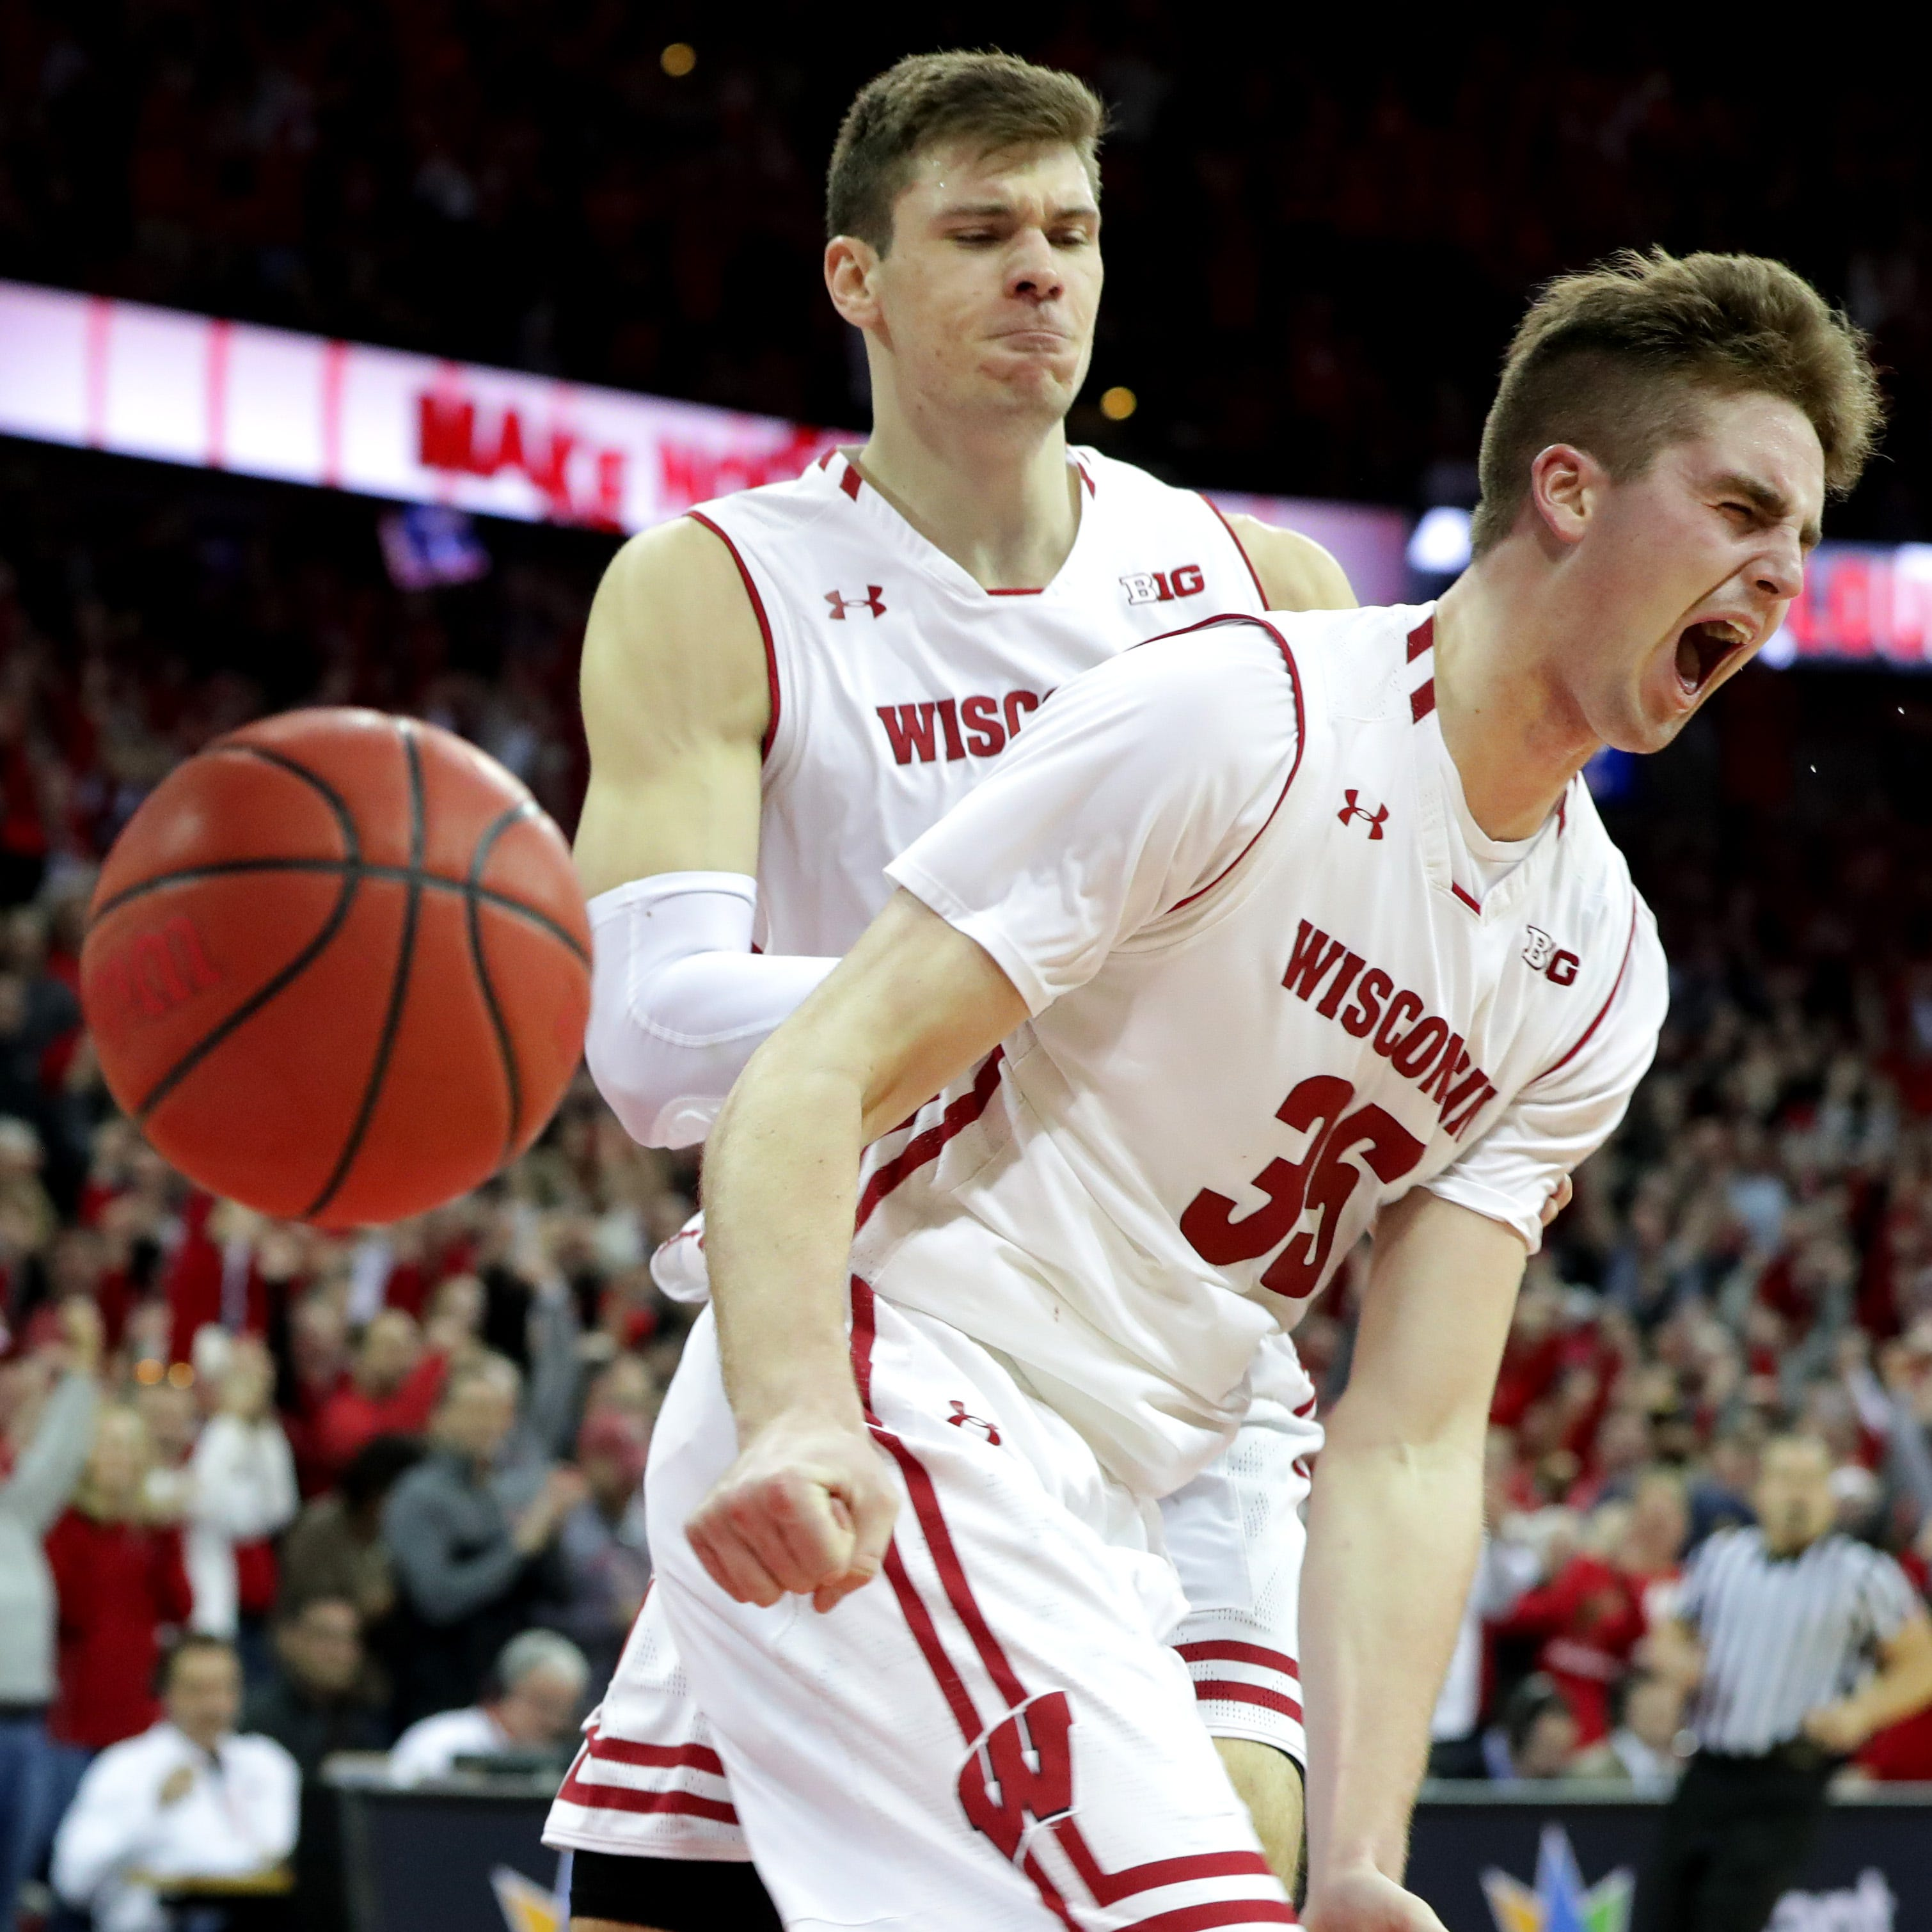 Wisconsin 64, Michigan 54: Badgers dominate down the stretch to hand Wolverines first loss